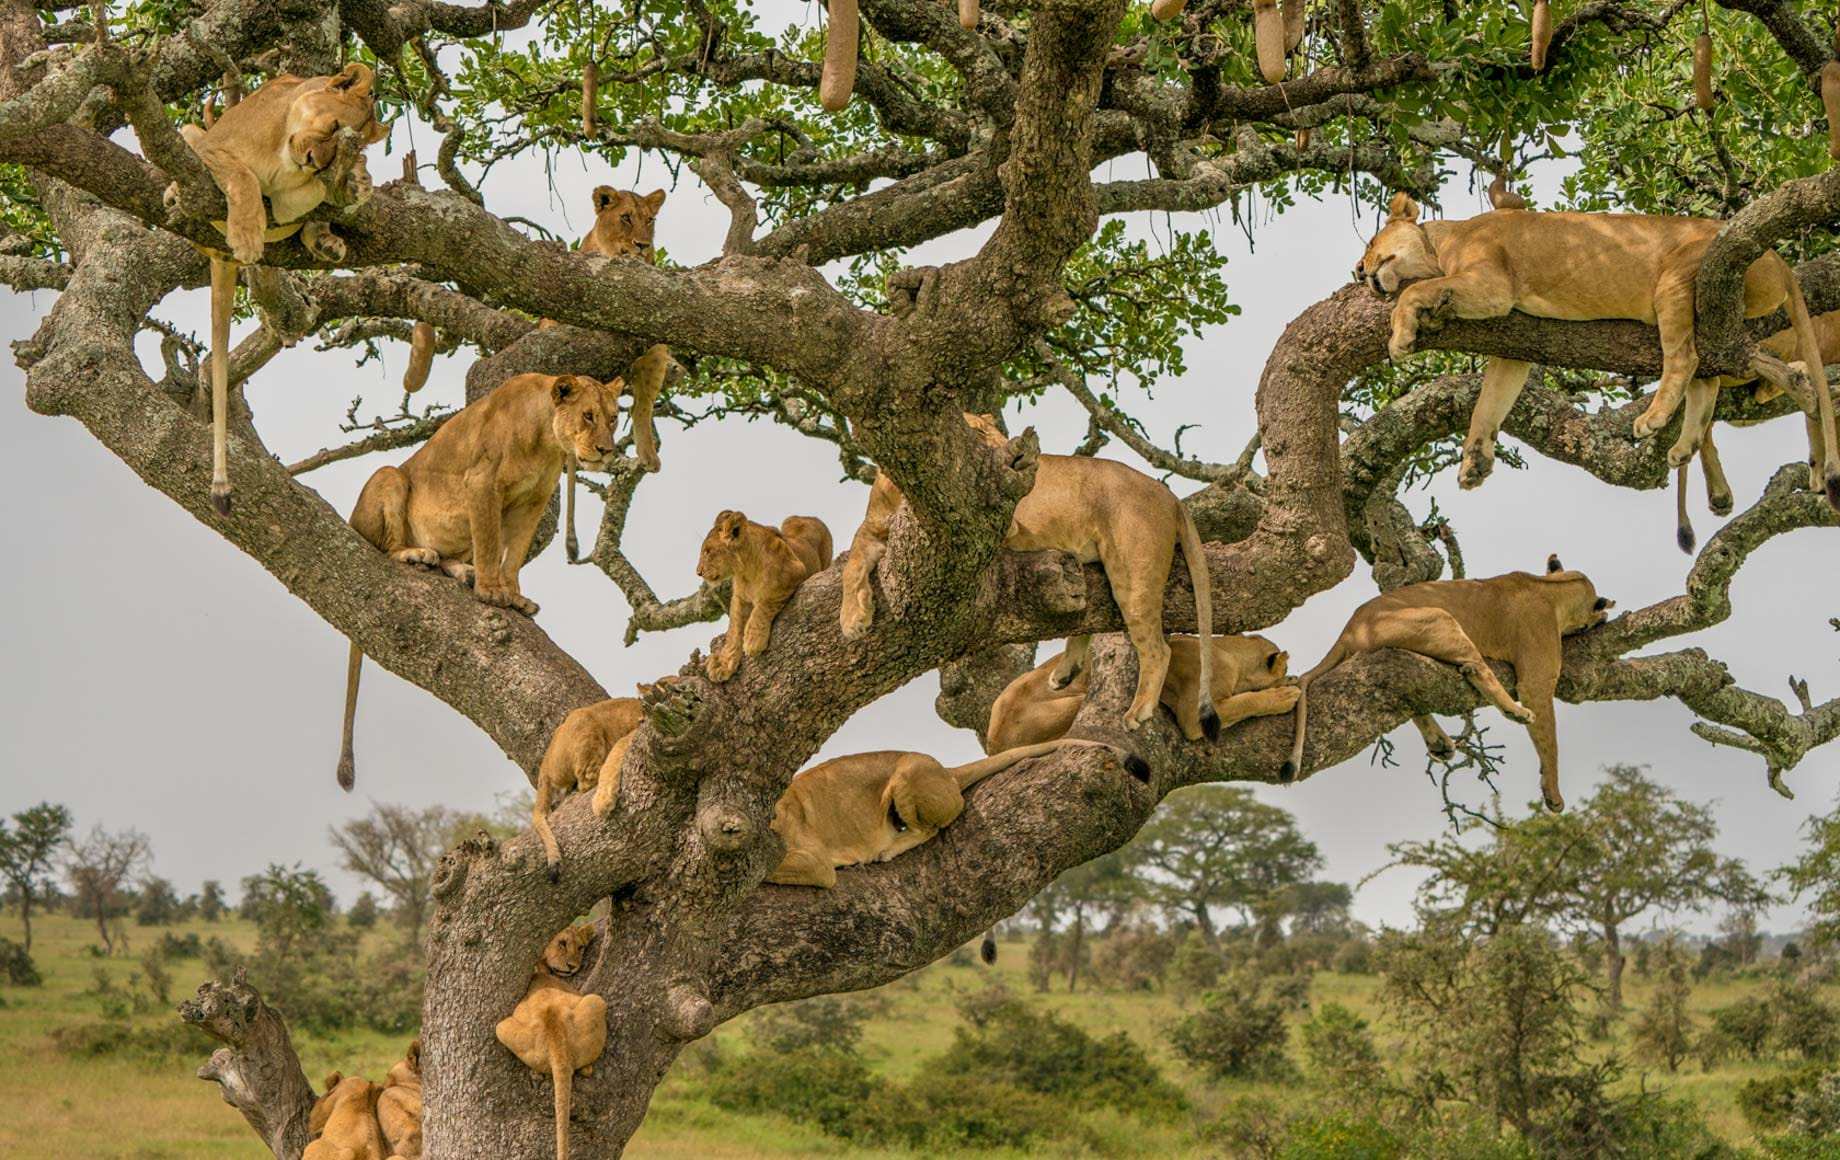 lionesses hanging out on a tree